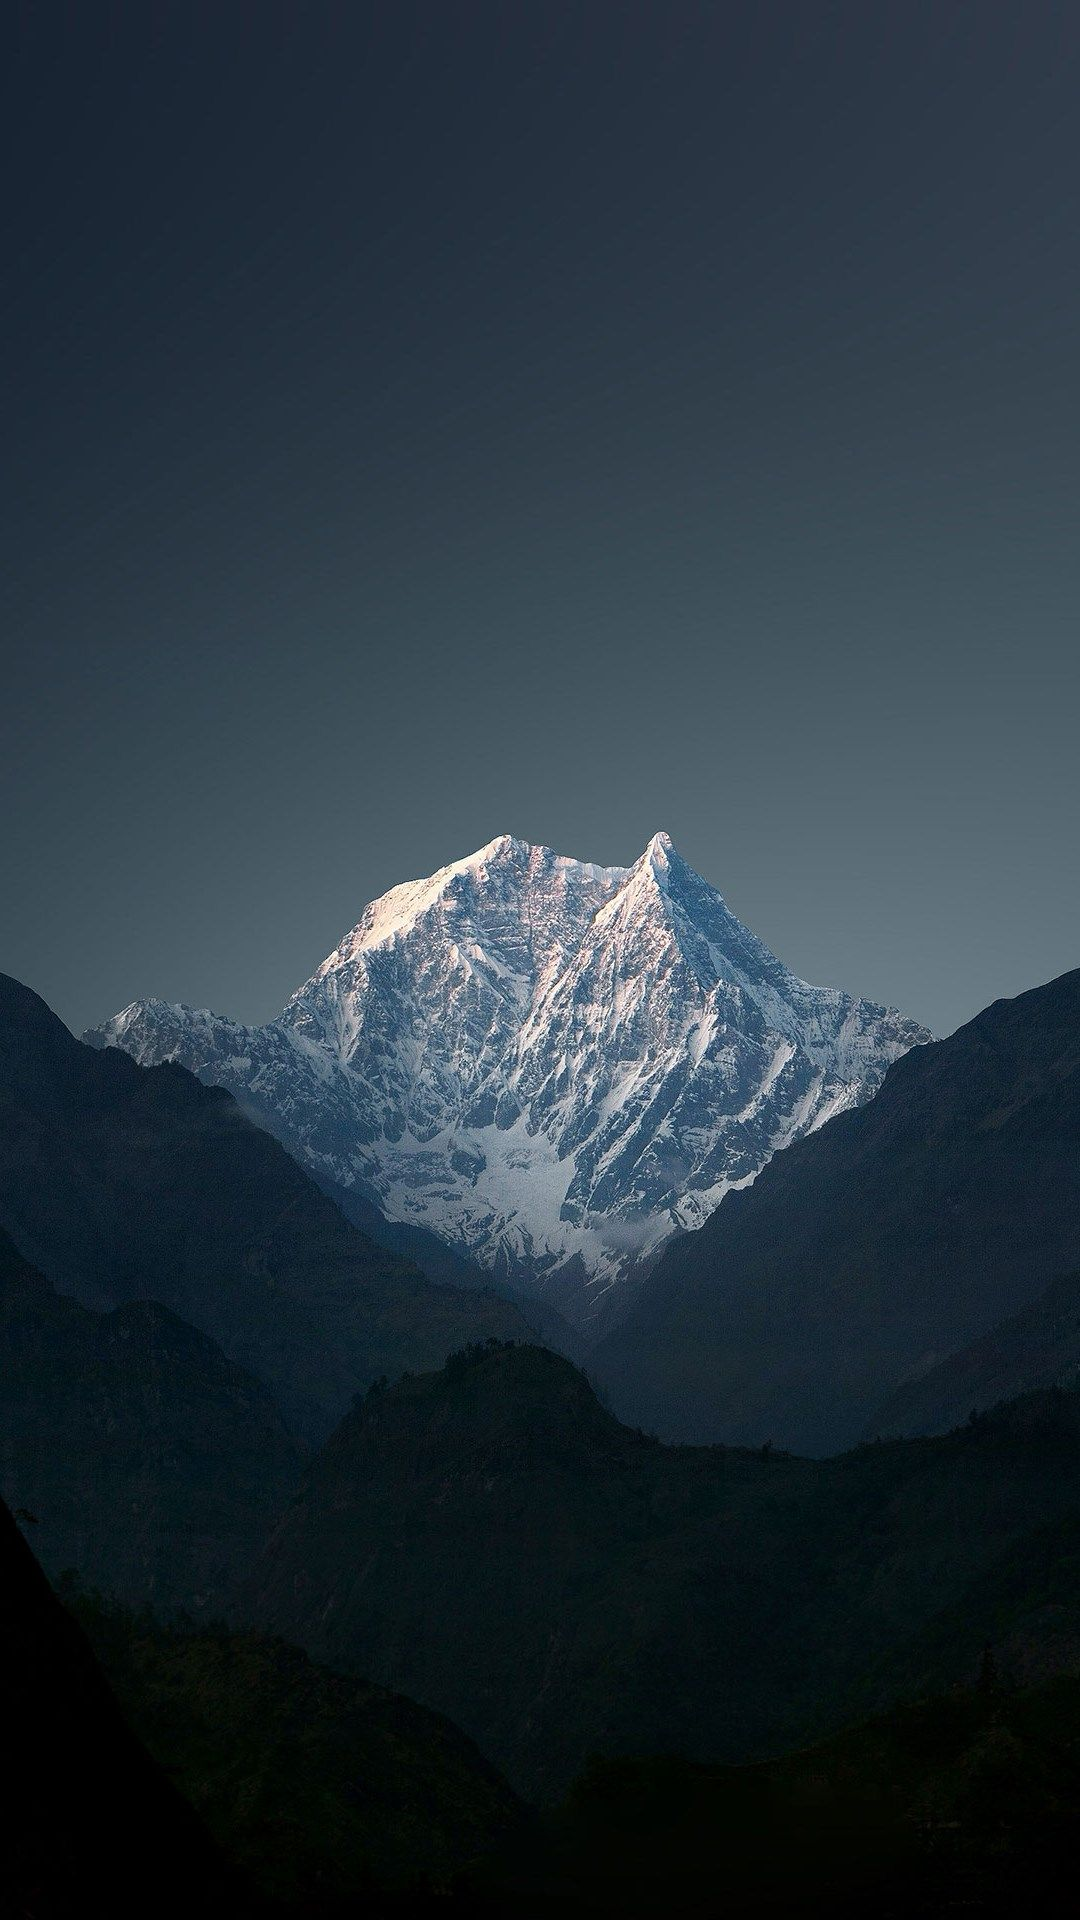 Enjoy Minimalist Wallpapers Iphone Wallpaper Mountains Photography Wallpaper Landscape Photography Nature